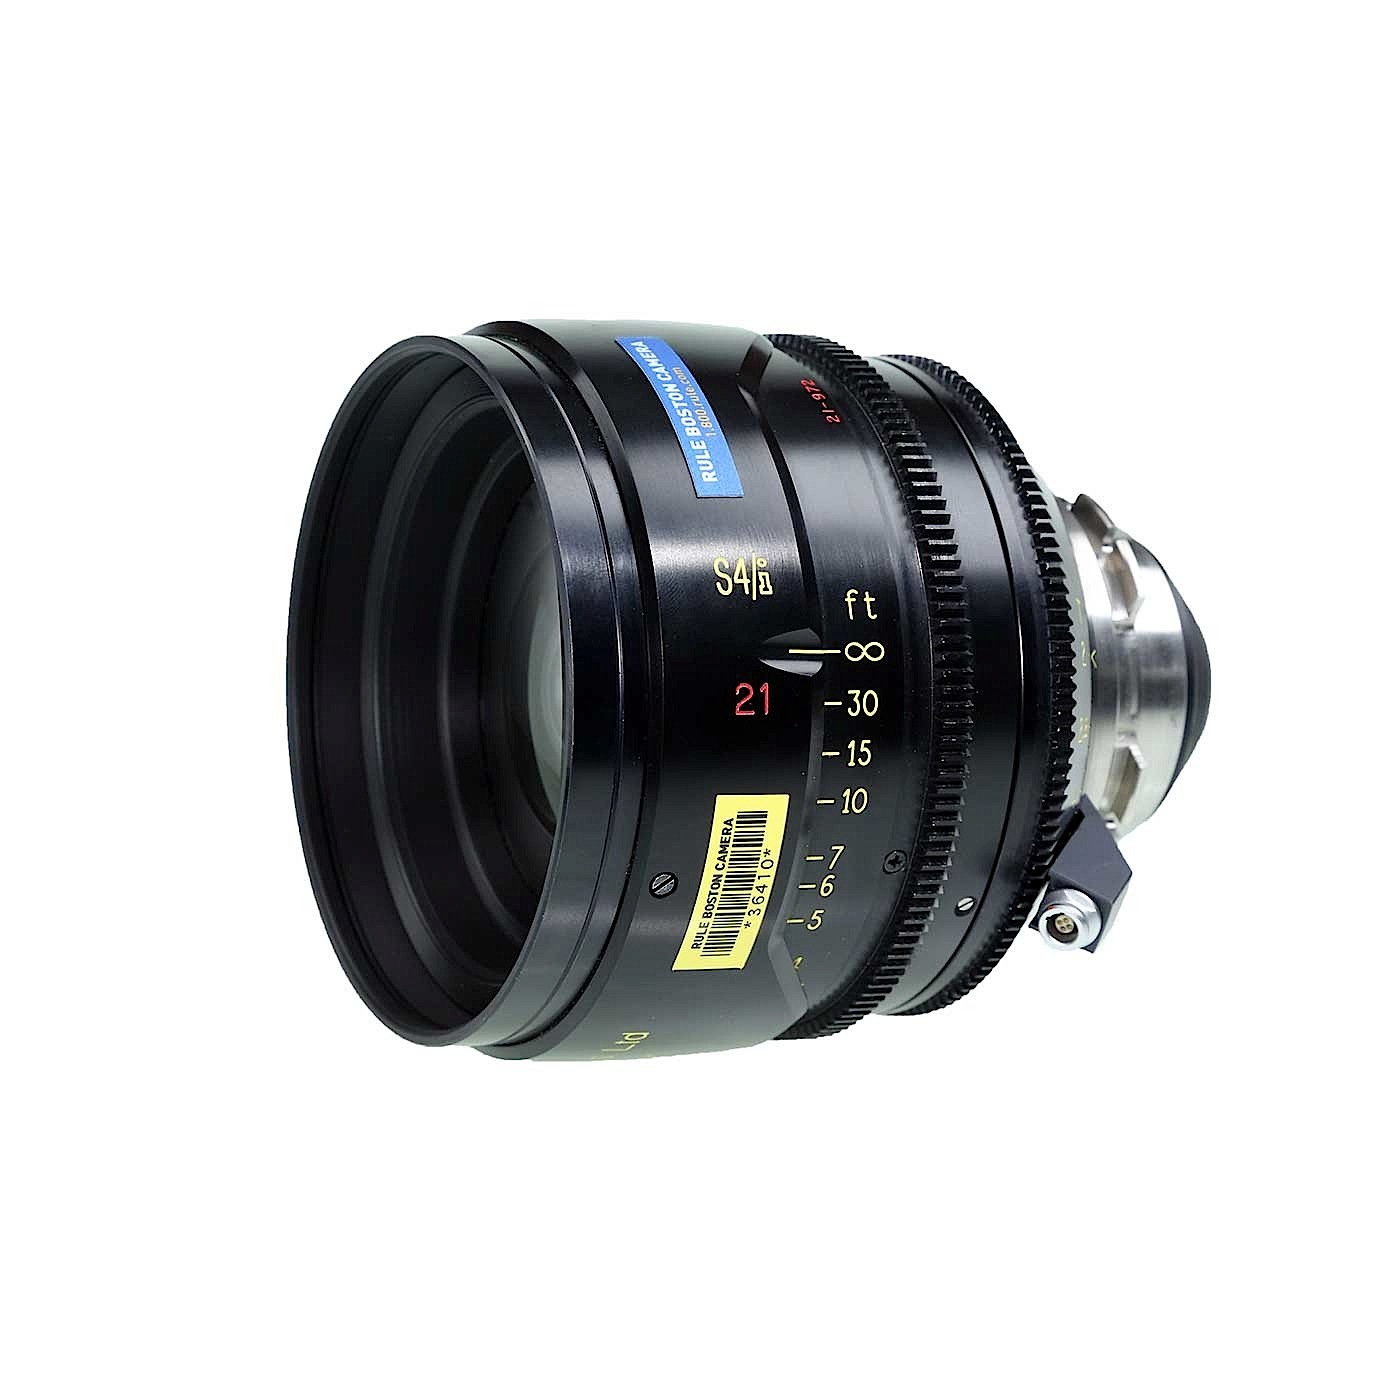 Cooke 21mm S4 PL Prime Lens